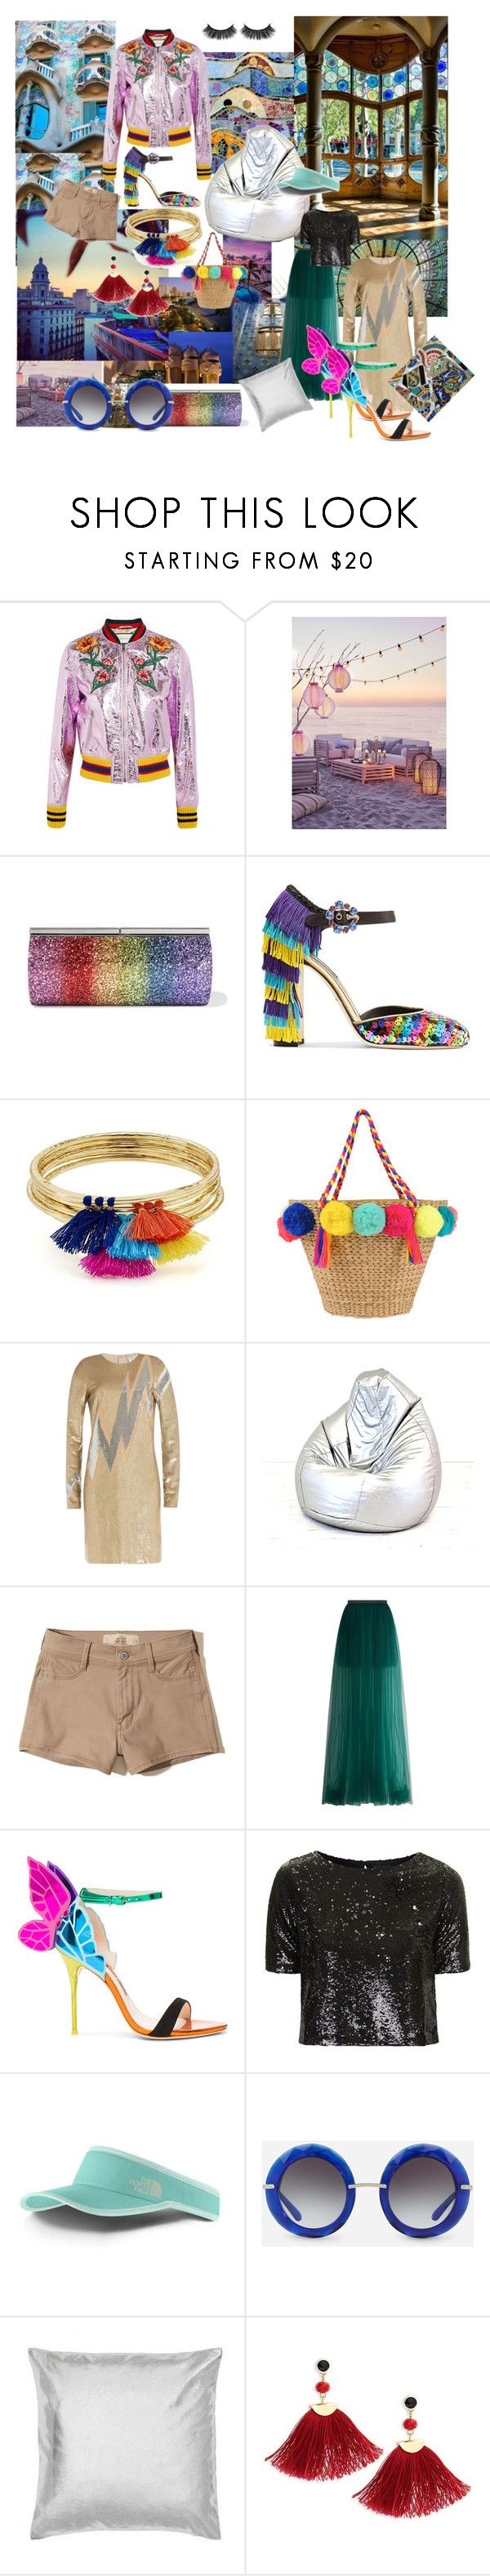 """#barcelona #beautifultravel #gaudistyle #mosaic #colours #glitter #dazzle #shine #metallics"" by cielshopinteriors ❤ liked on Polyvore featuring Gaudì, Gucci, We Are Massiv., Jimmy Choo, Dolce&Gabbana, Aqua, Emilio Pucci, Ciel, Hollister Co. and Delpozo"